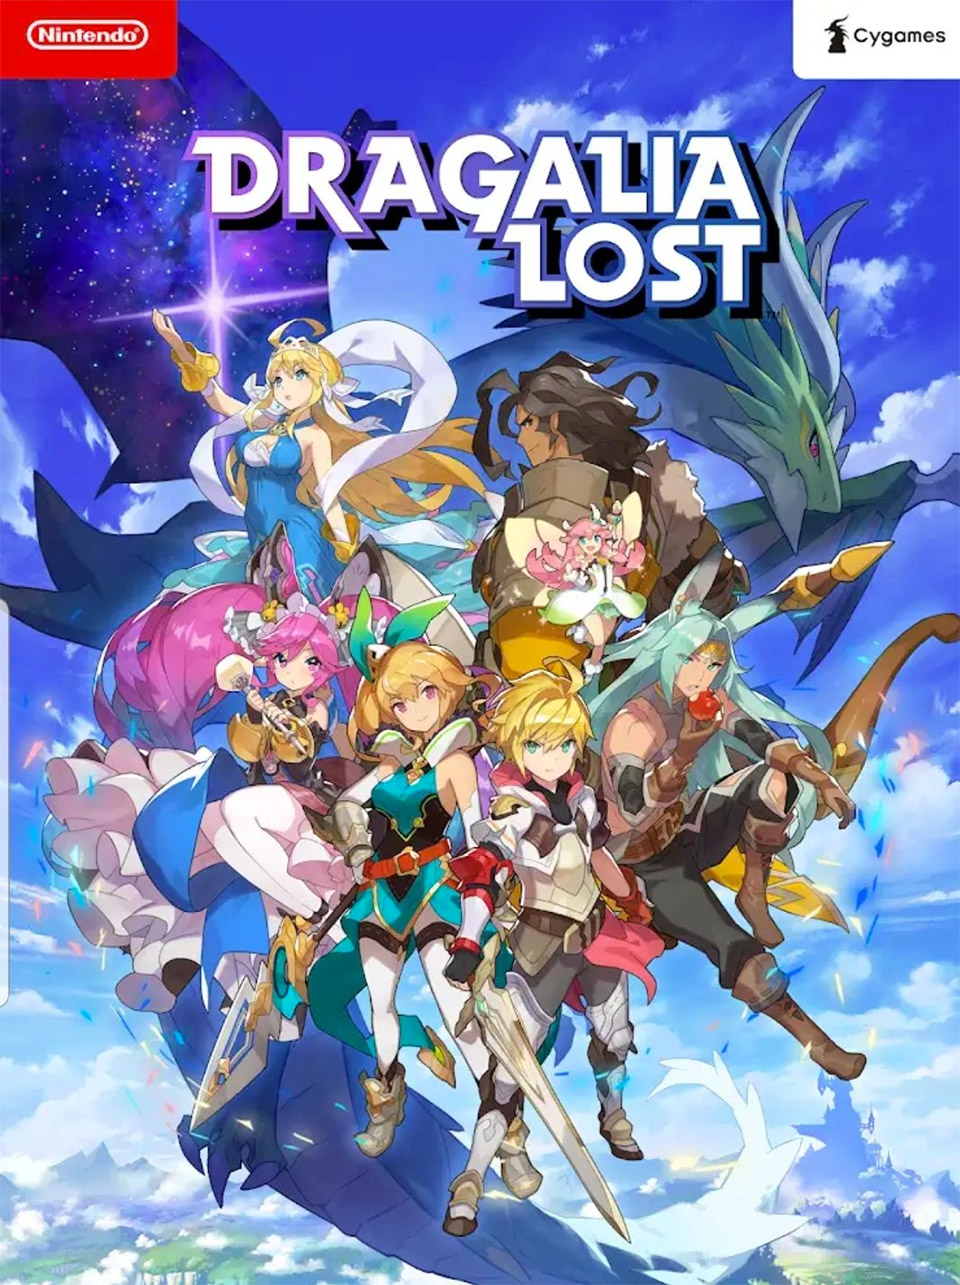 Nintendos New Mobile Game Dragalia Lost Release Date Announced